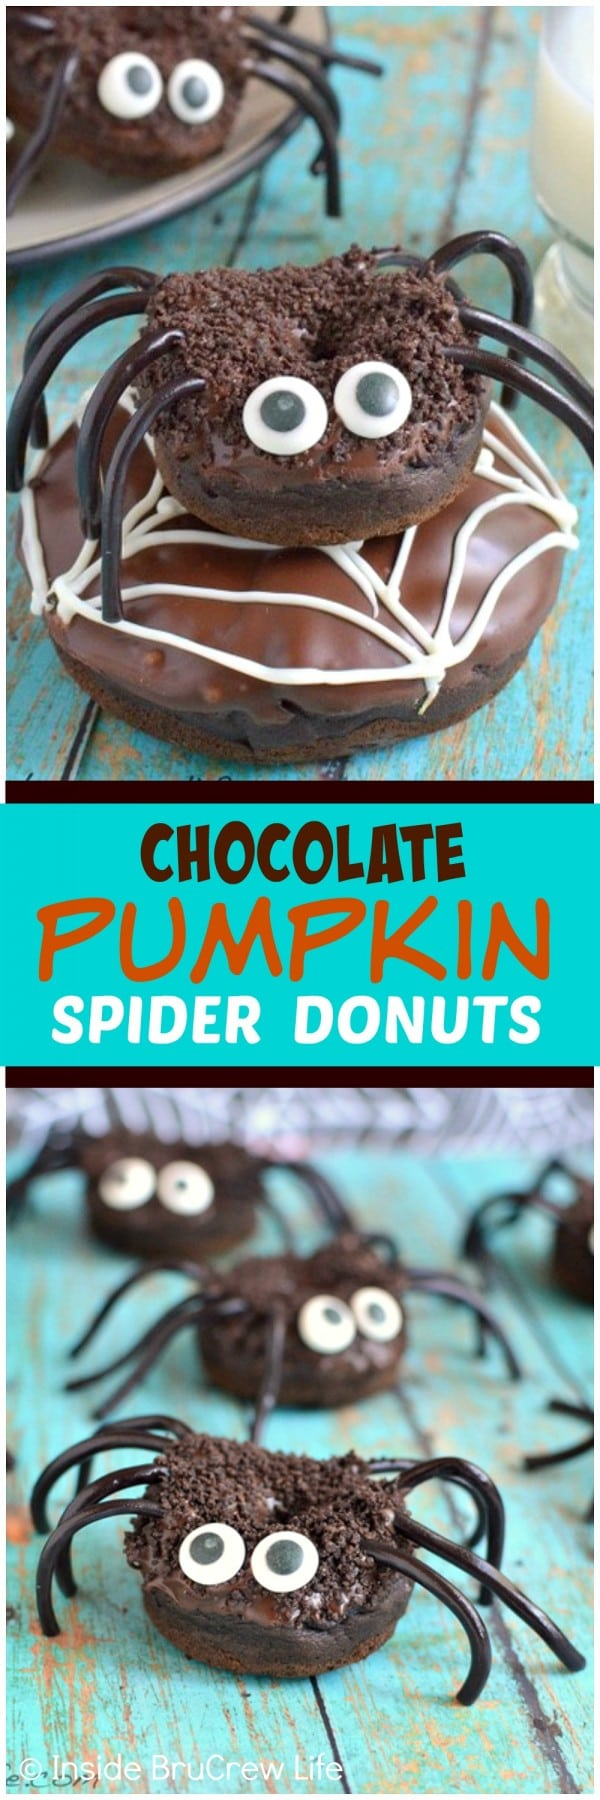 Chocolate Pumpkin Spider Donuts - candy eyes & licorice legs turn these soft donuts into a creepy breakfast treat! Great recipe for Halloween parties!